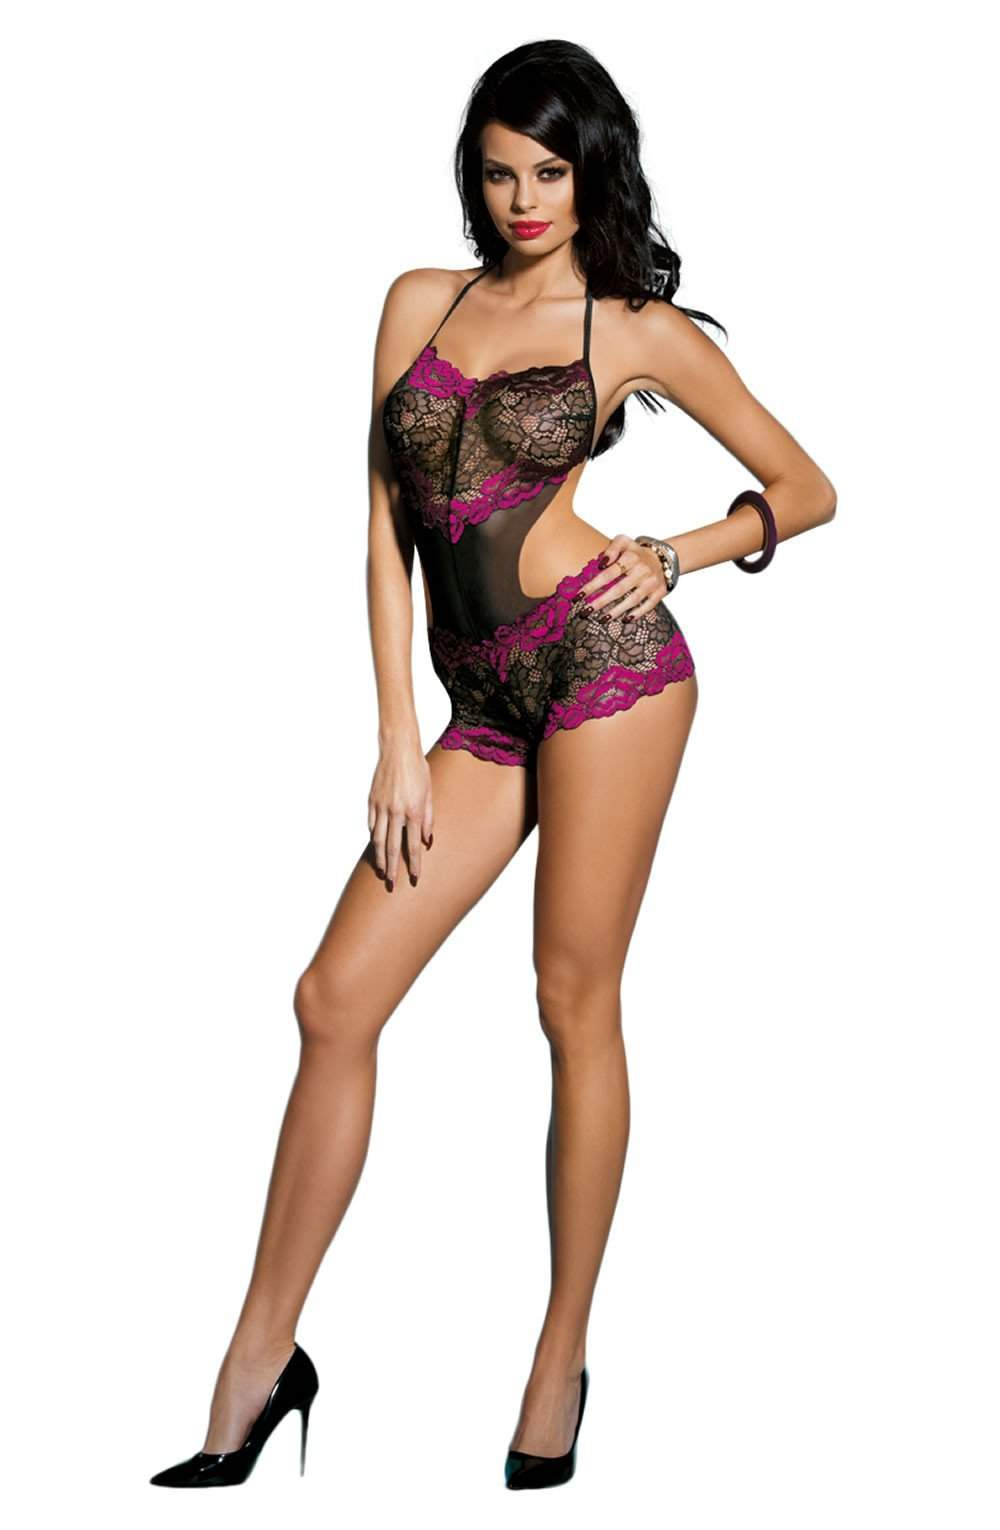 YX224 Teddy in Black/Rose by YesX - YesX - Katys Boutique Lingerie USA